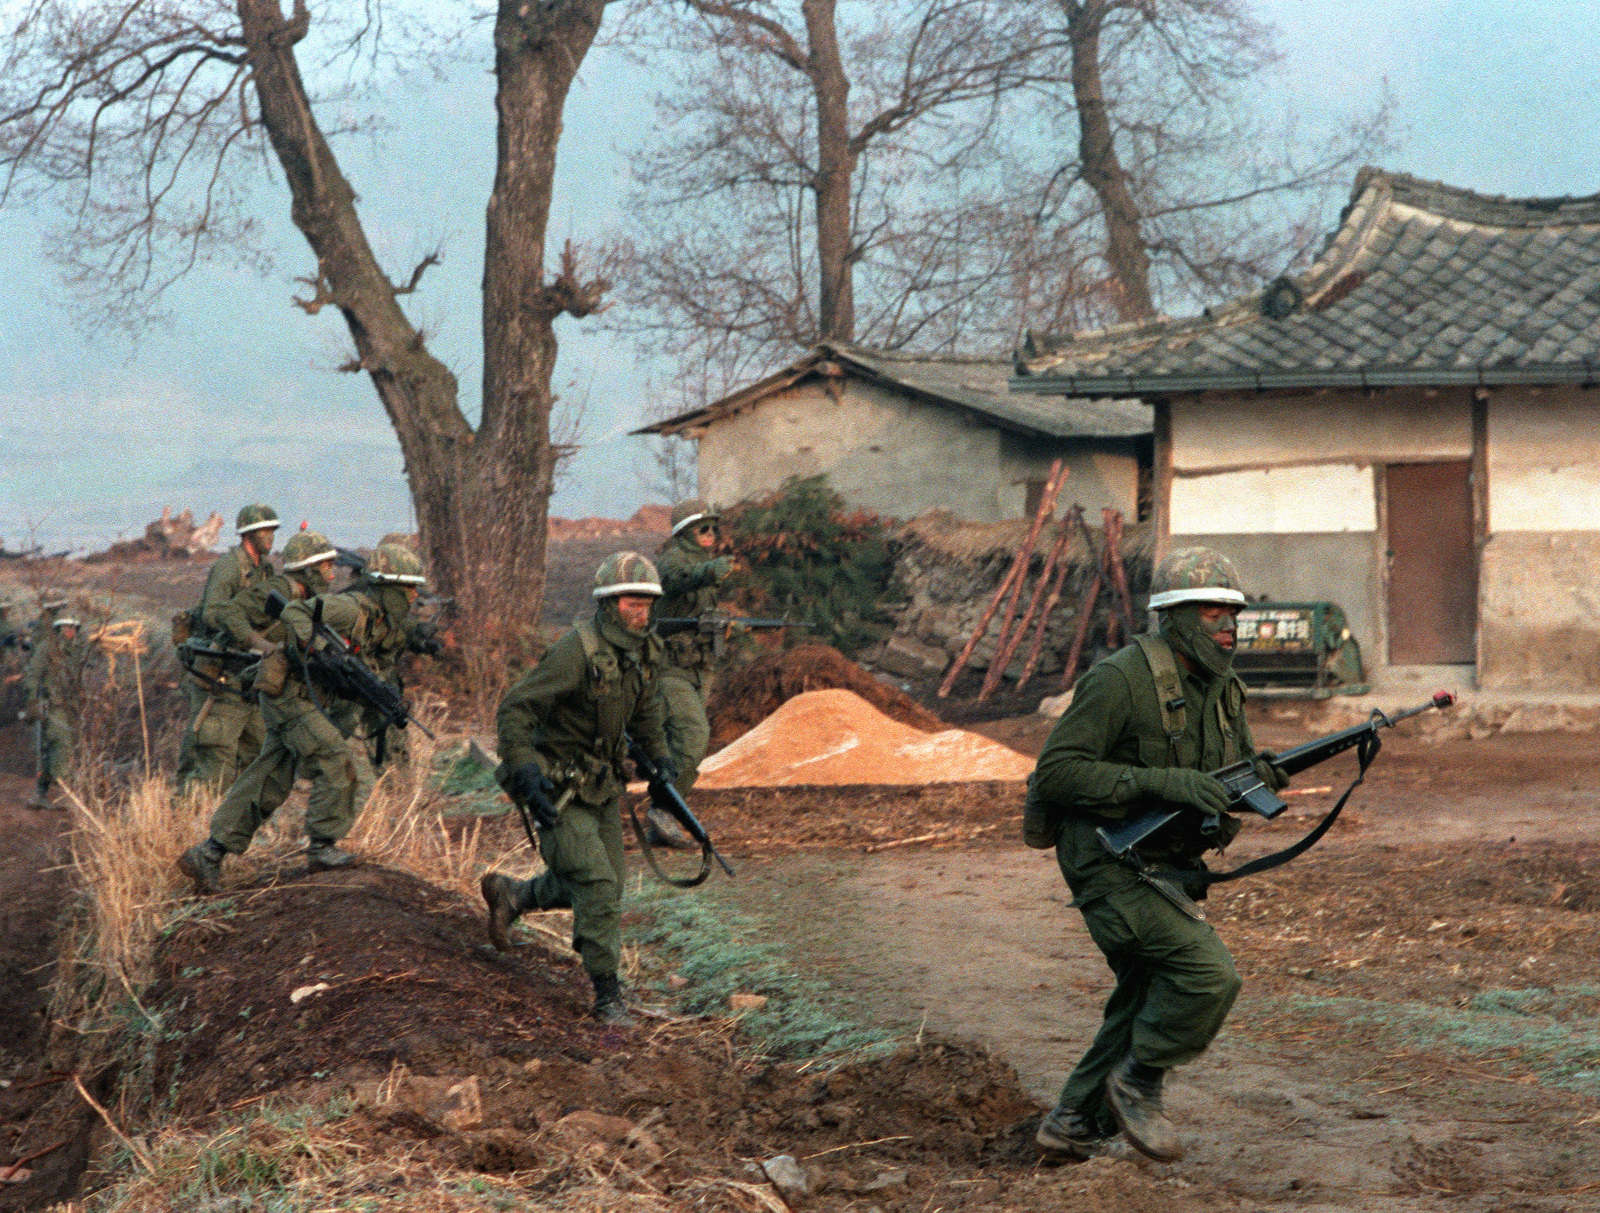 Members of the 1ST Bn., 21st Inf., 25th Inf. Div., rush past a Korean farm village in a counter attack against the Orange Forces, during the joint Republic of Korea/U.S. training exercise Team Spirit '82